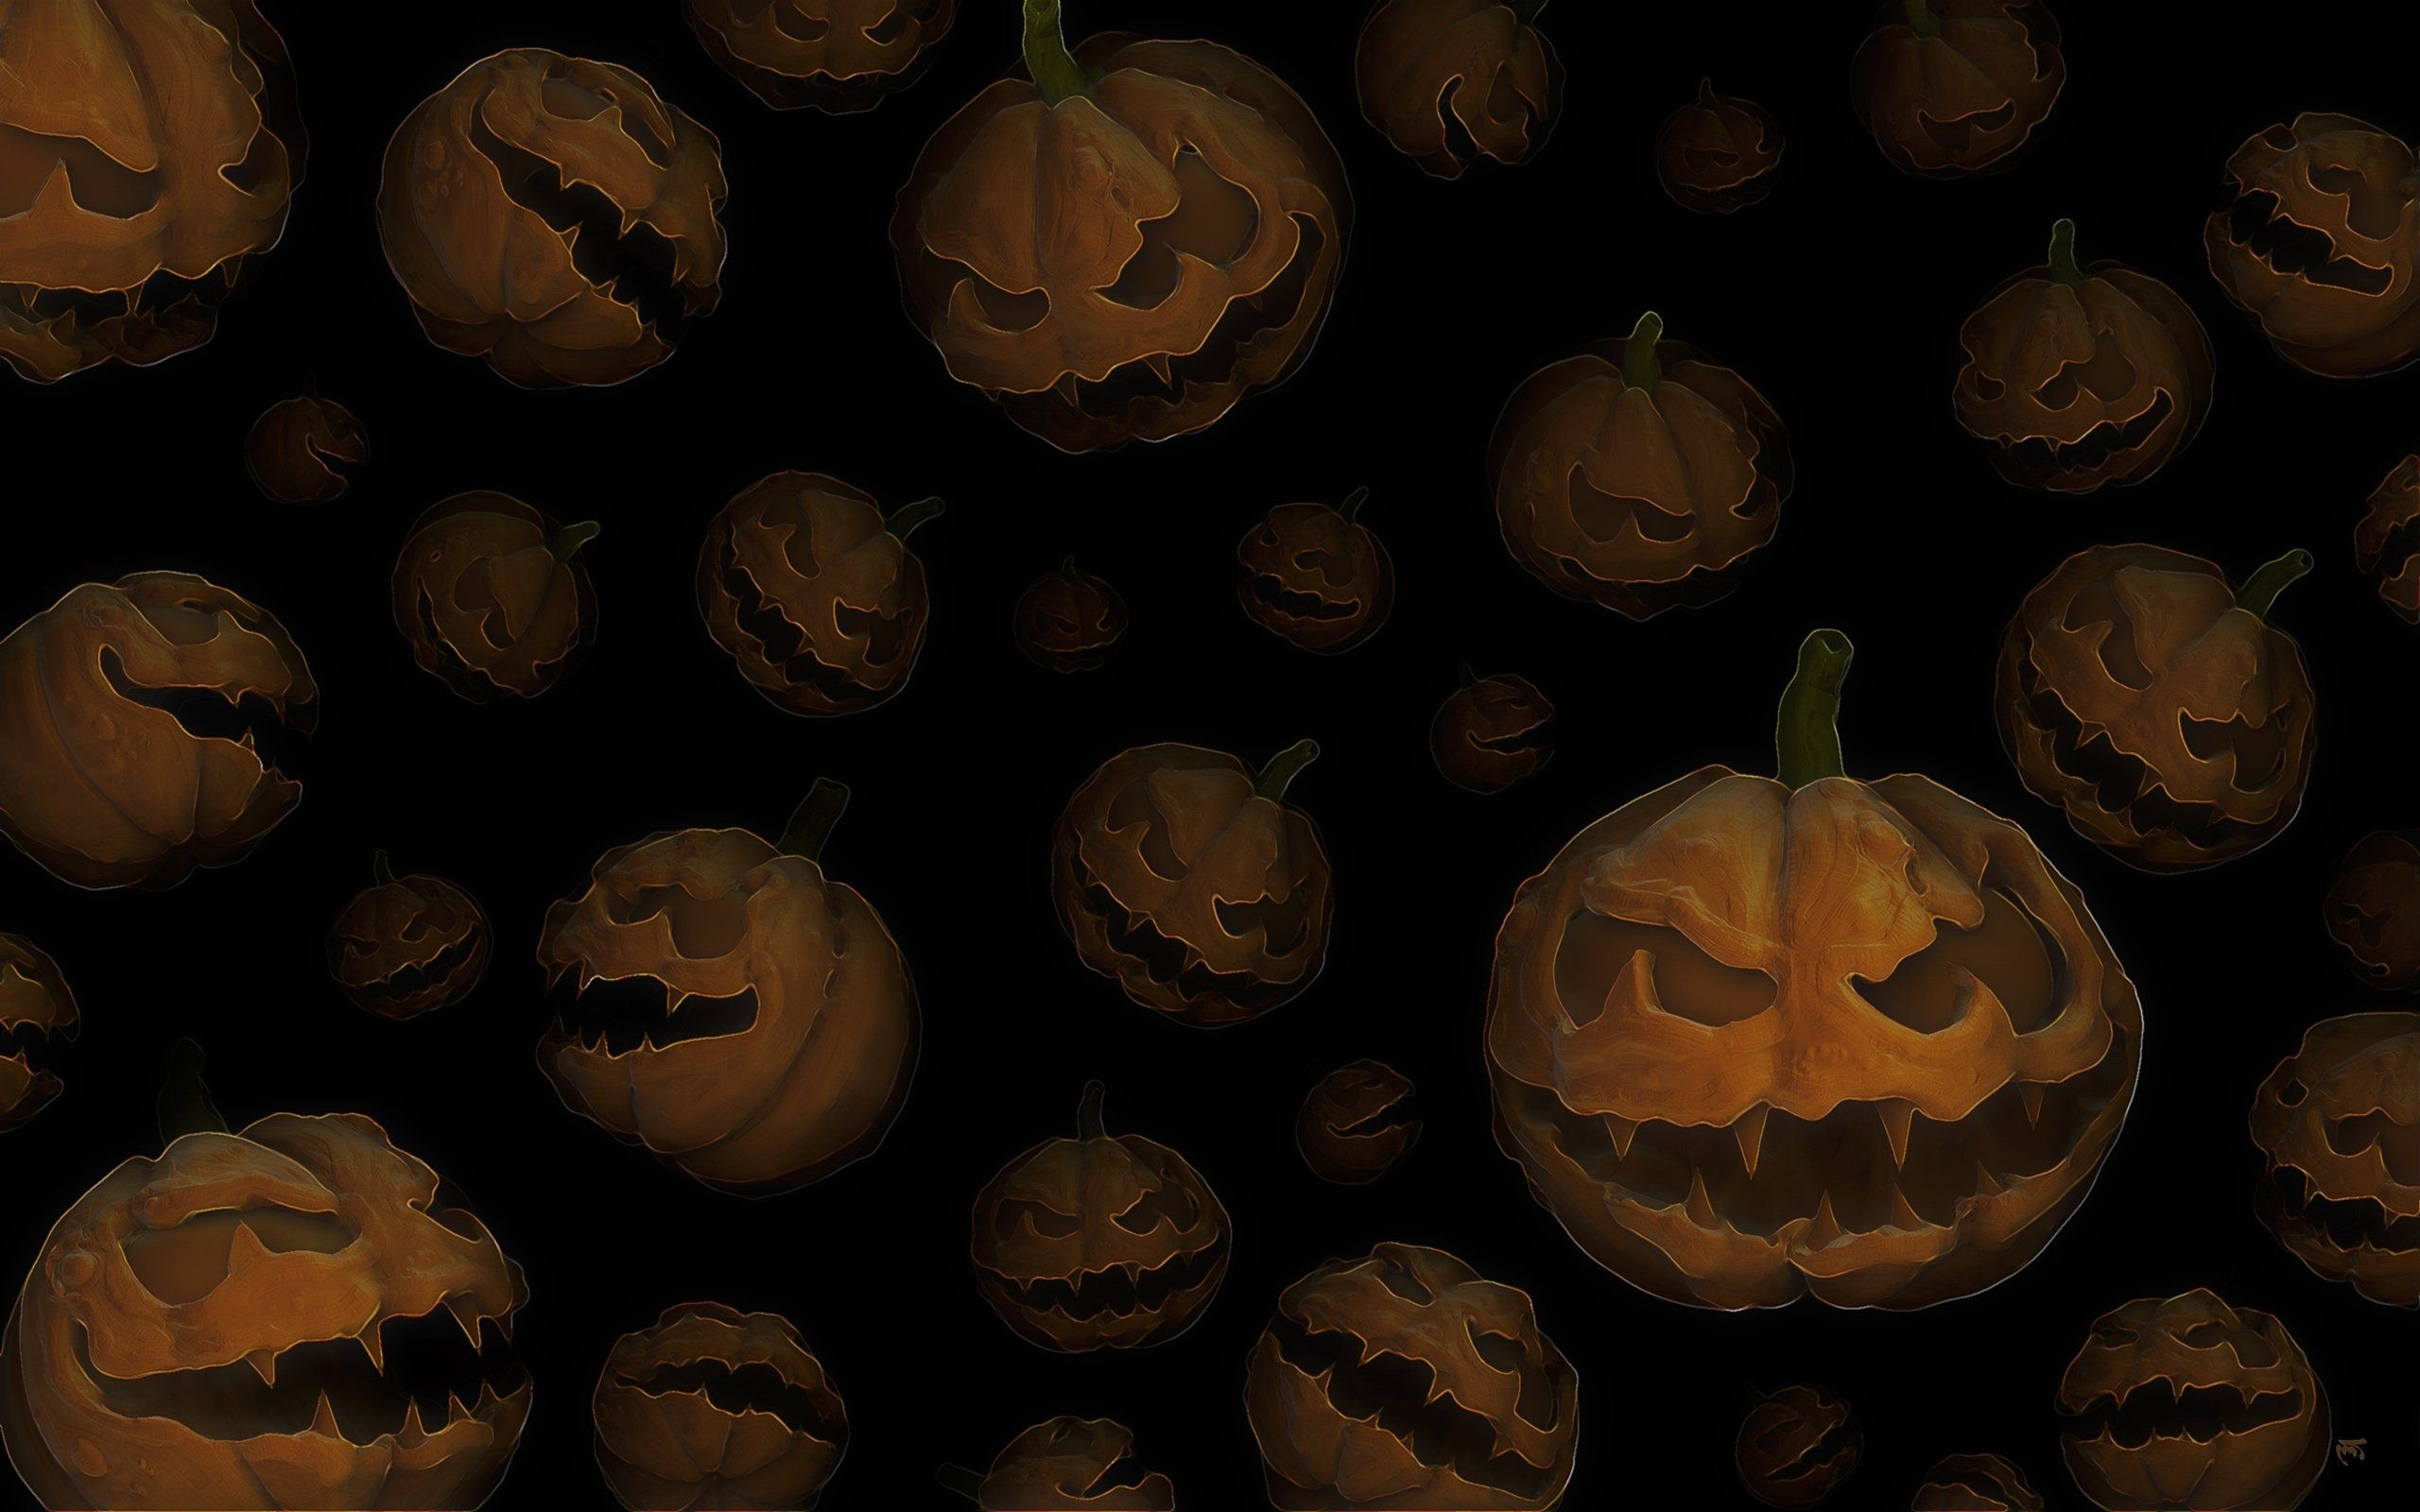 2560x1600 halloween desktop pictures wallpaper - Scary Halloween Wallpaper Tumblr